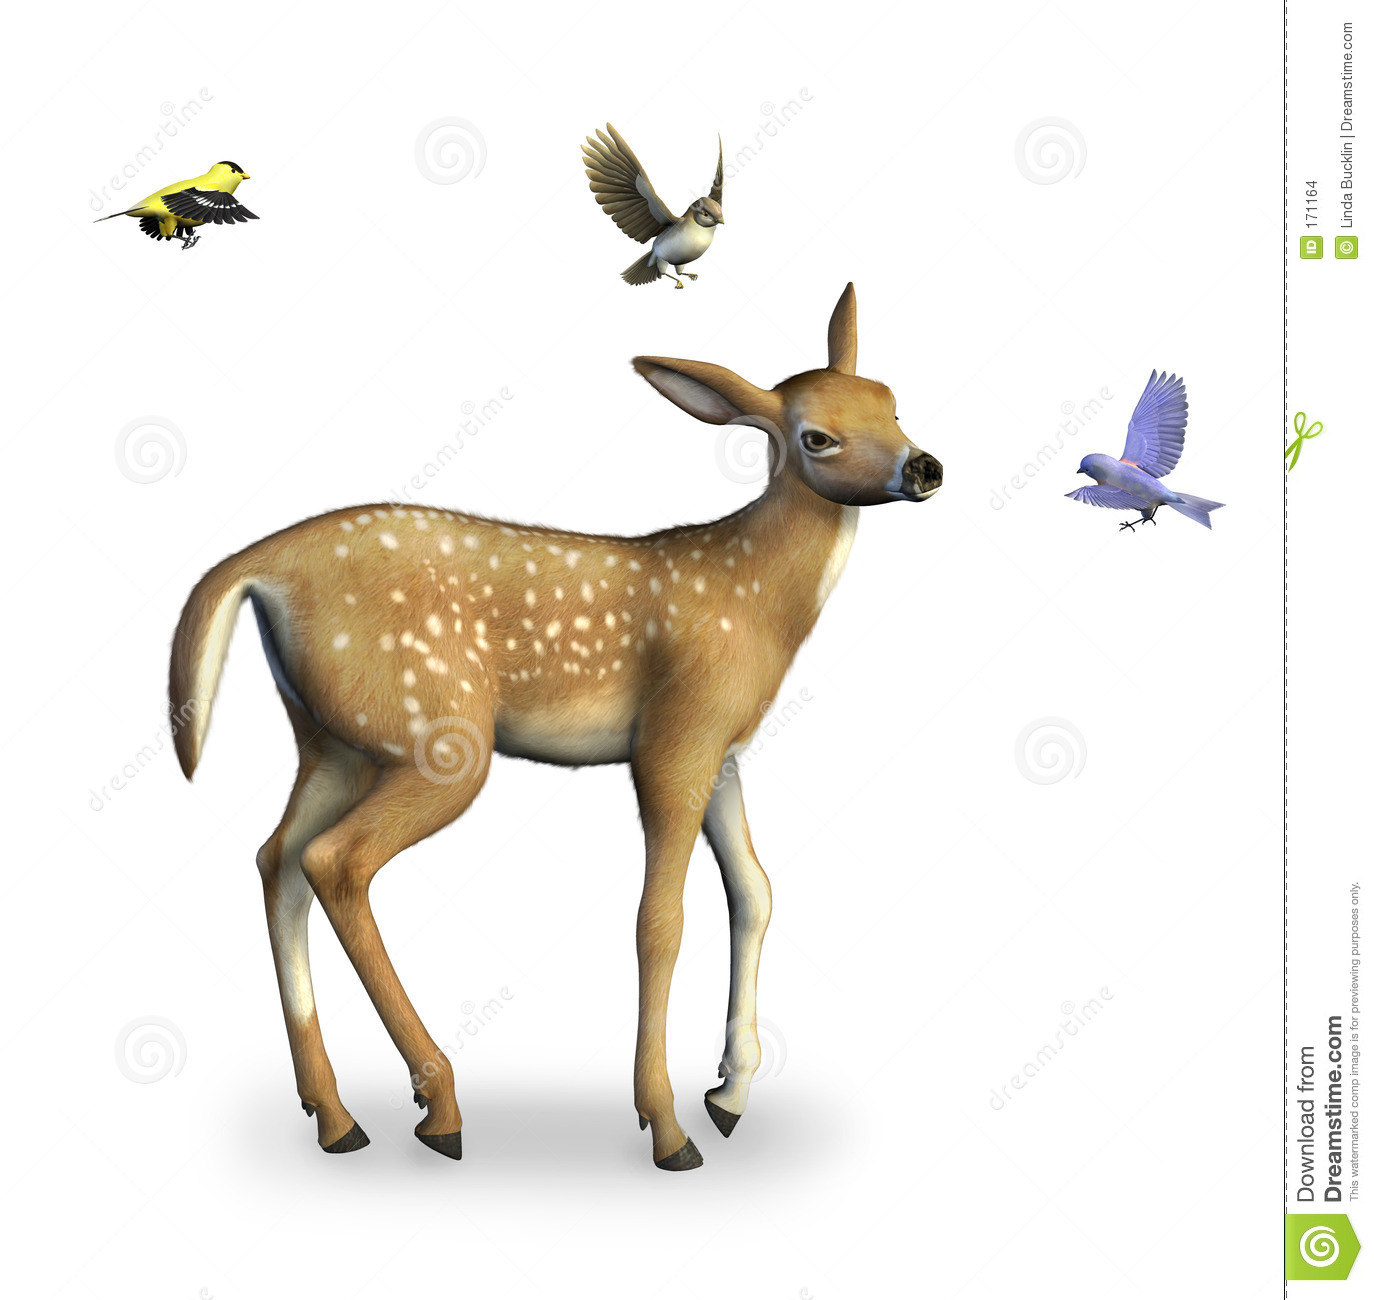 Fawn with Birds includes clipping path